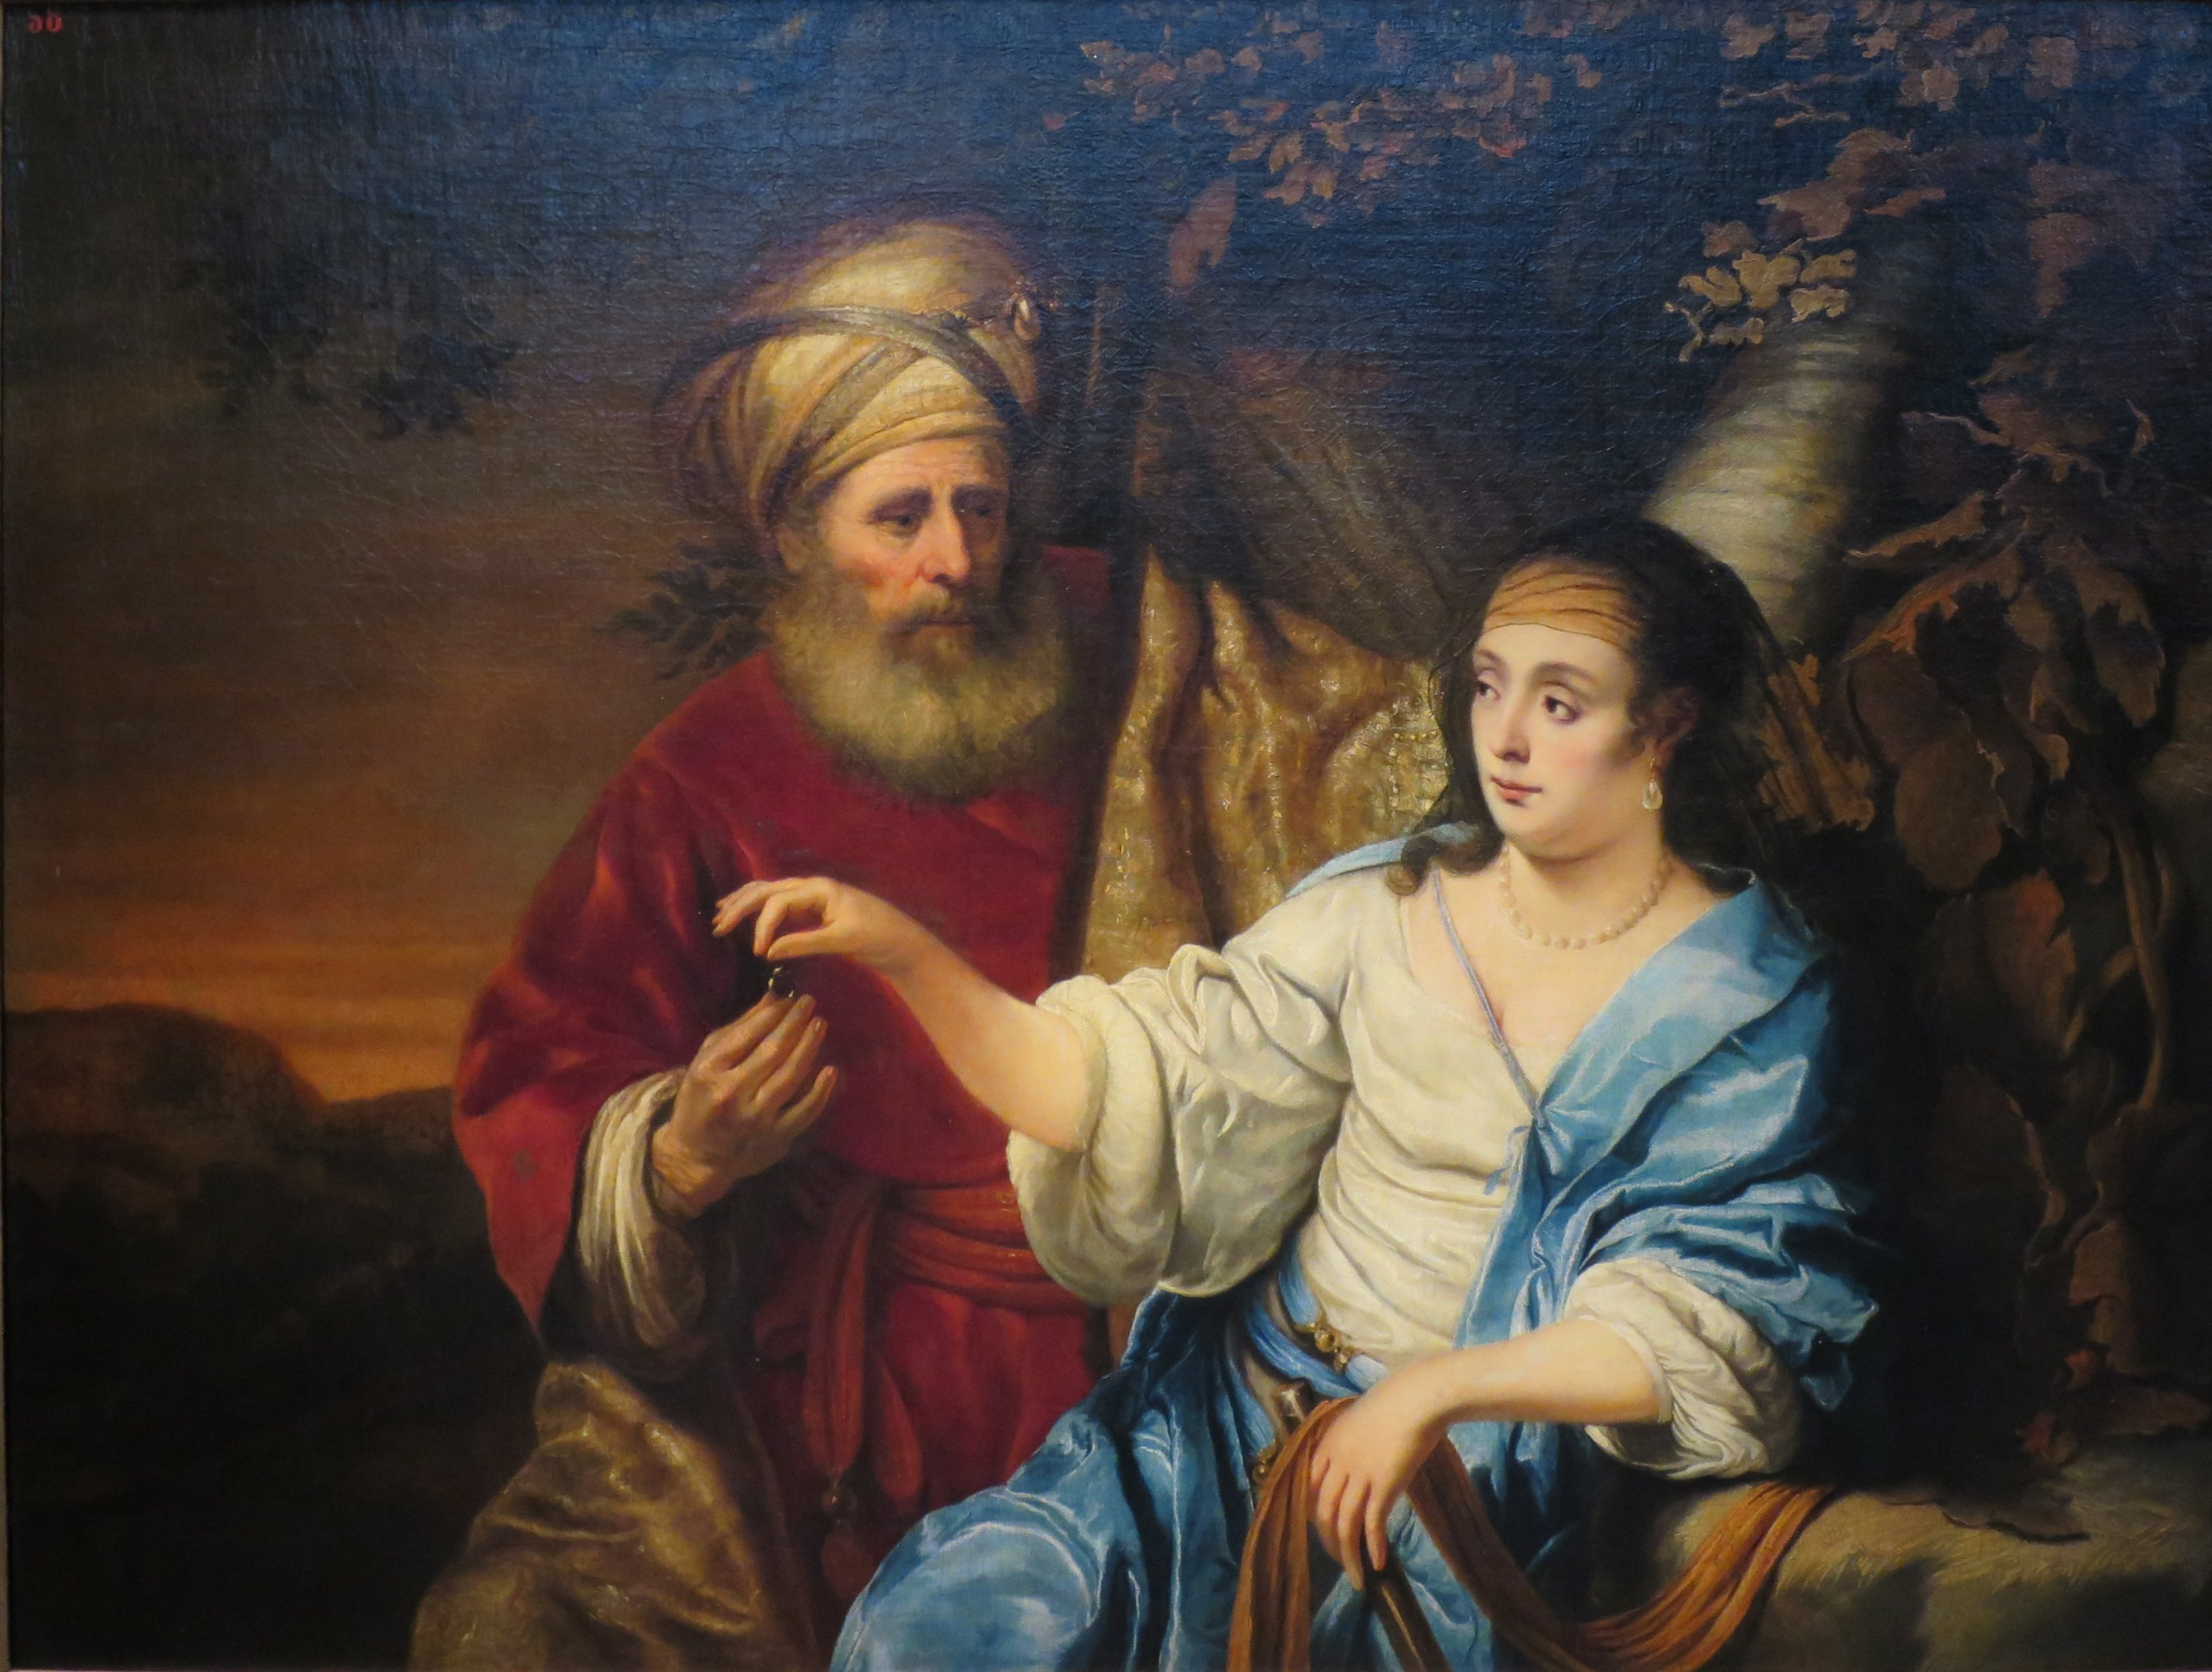 _judah_and_tamar_by_ferdinand_bol_1653_pushkin_museum.jpeg